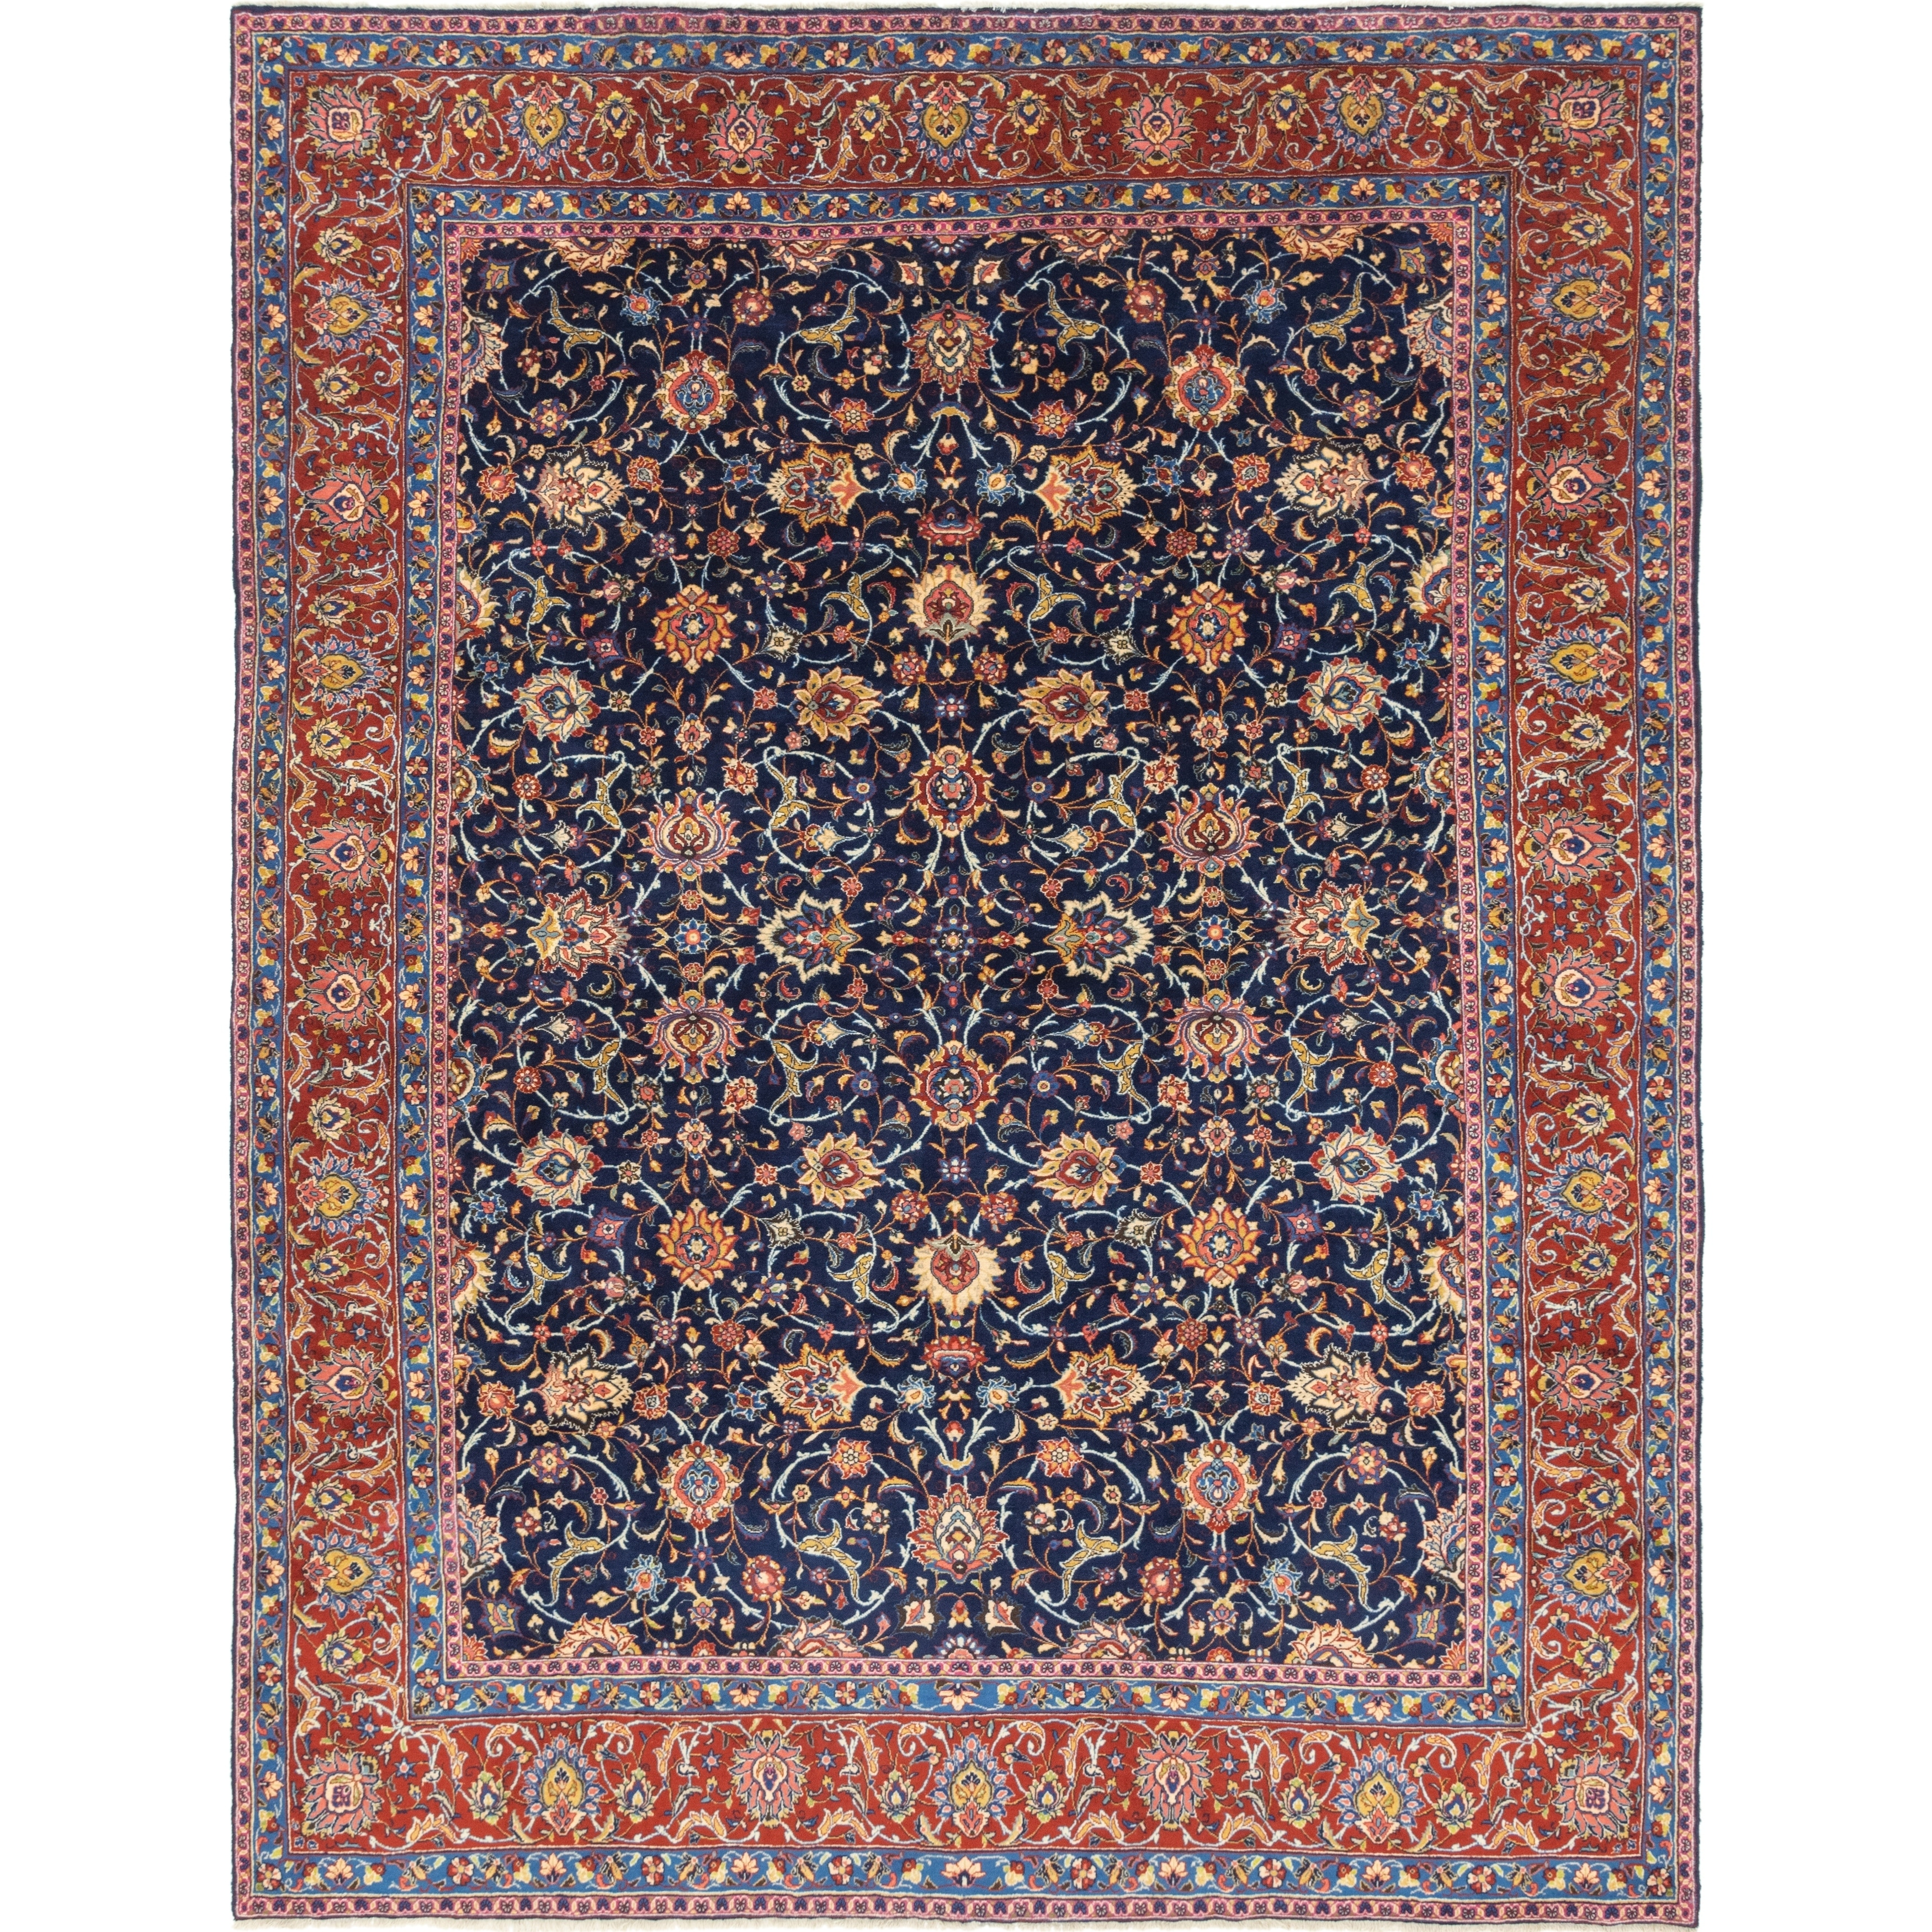 Hand Knotted Kashan Wool Area Rug - 10 3 x 13 3 (Navy blue - 10 3 x 13 3)